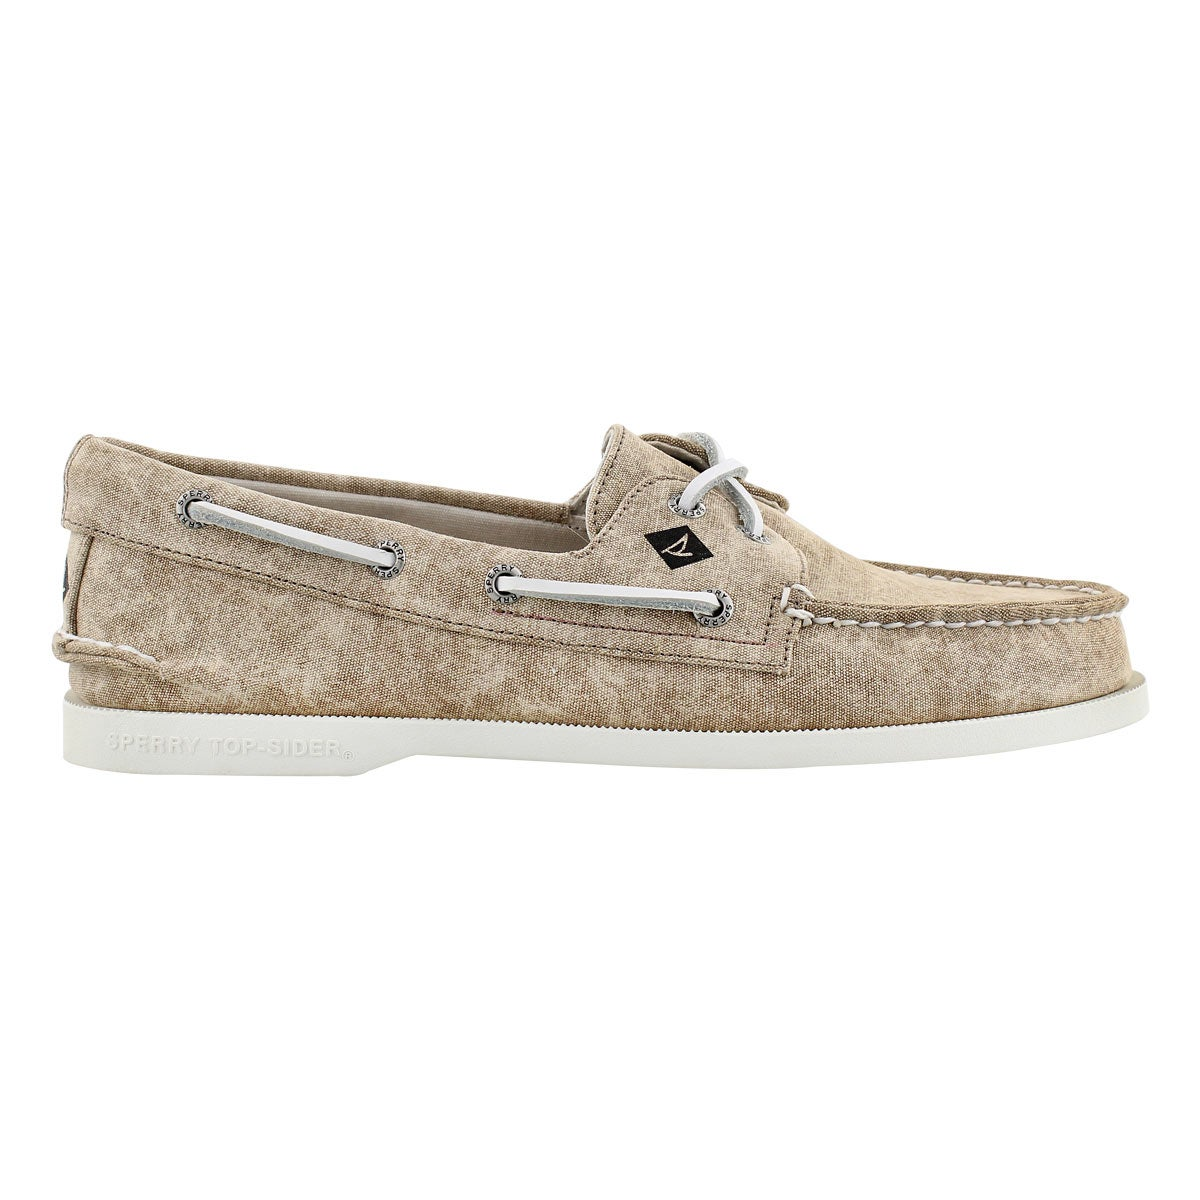 Mns A/O 2-Eye White Cap tan boat shoe